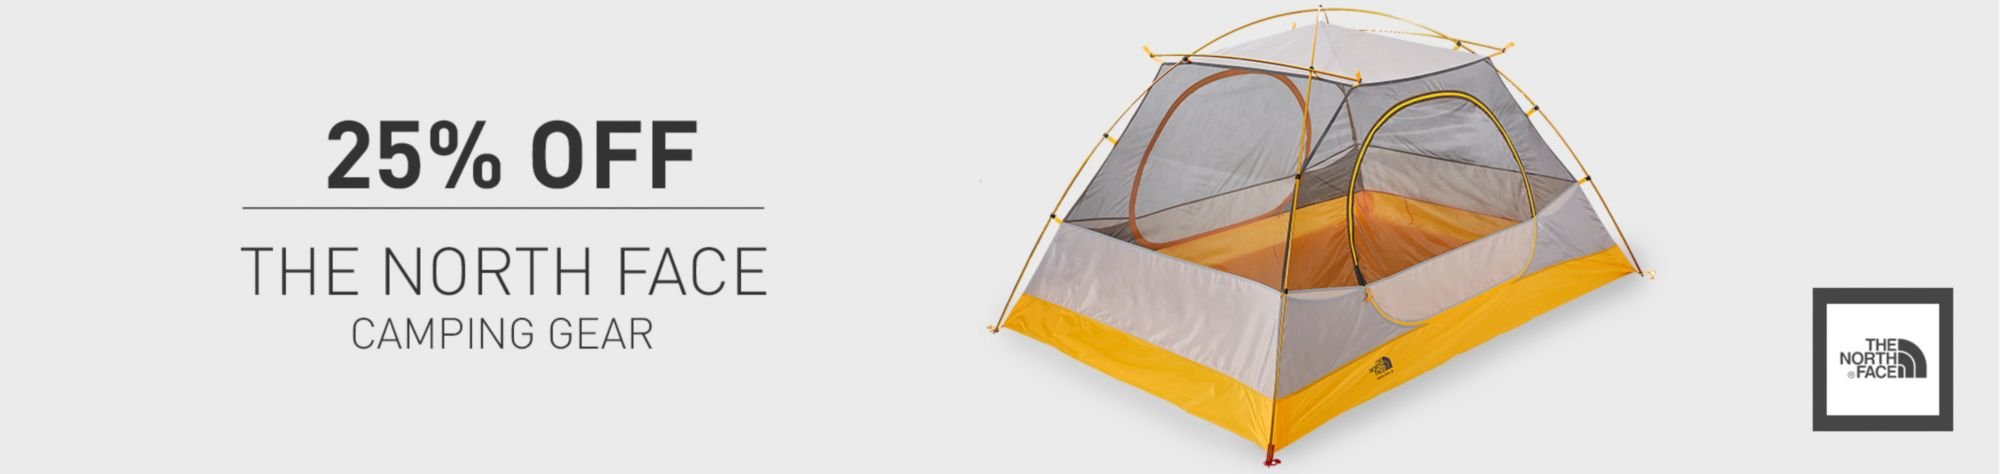 25 Off The North Face Camping Gear